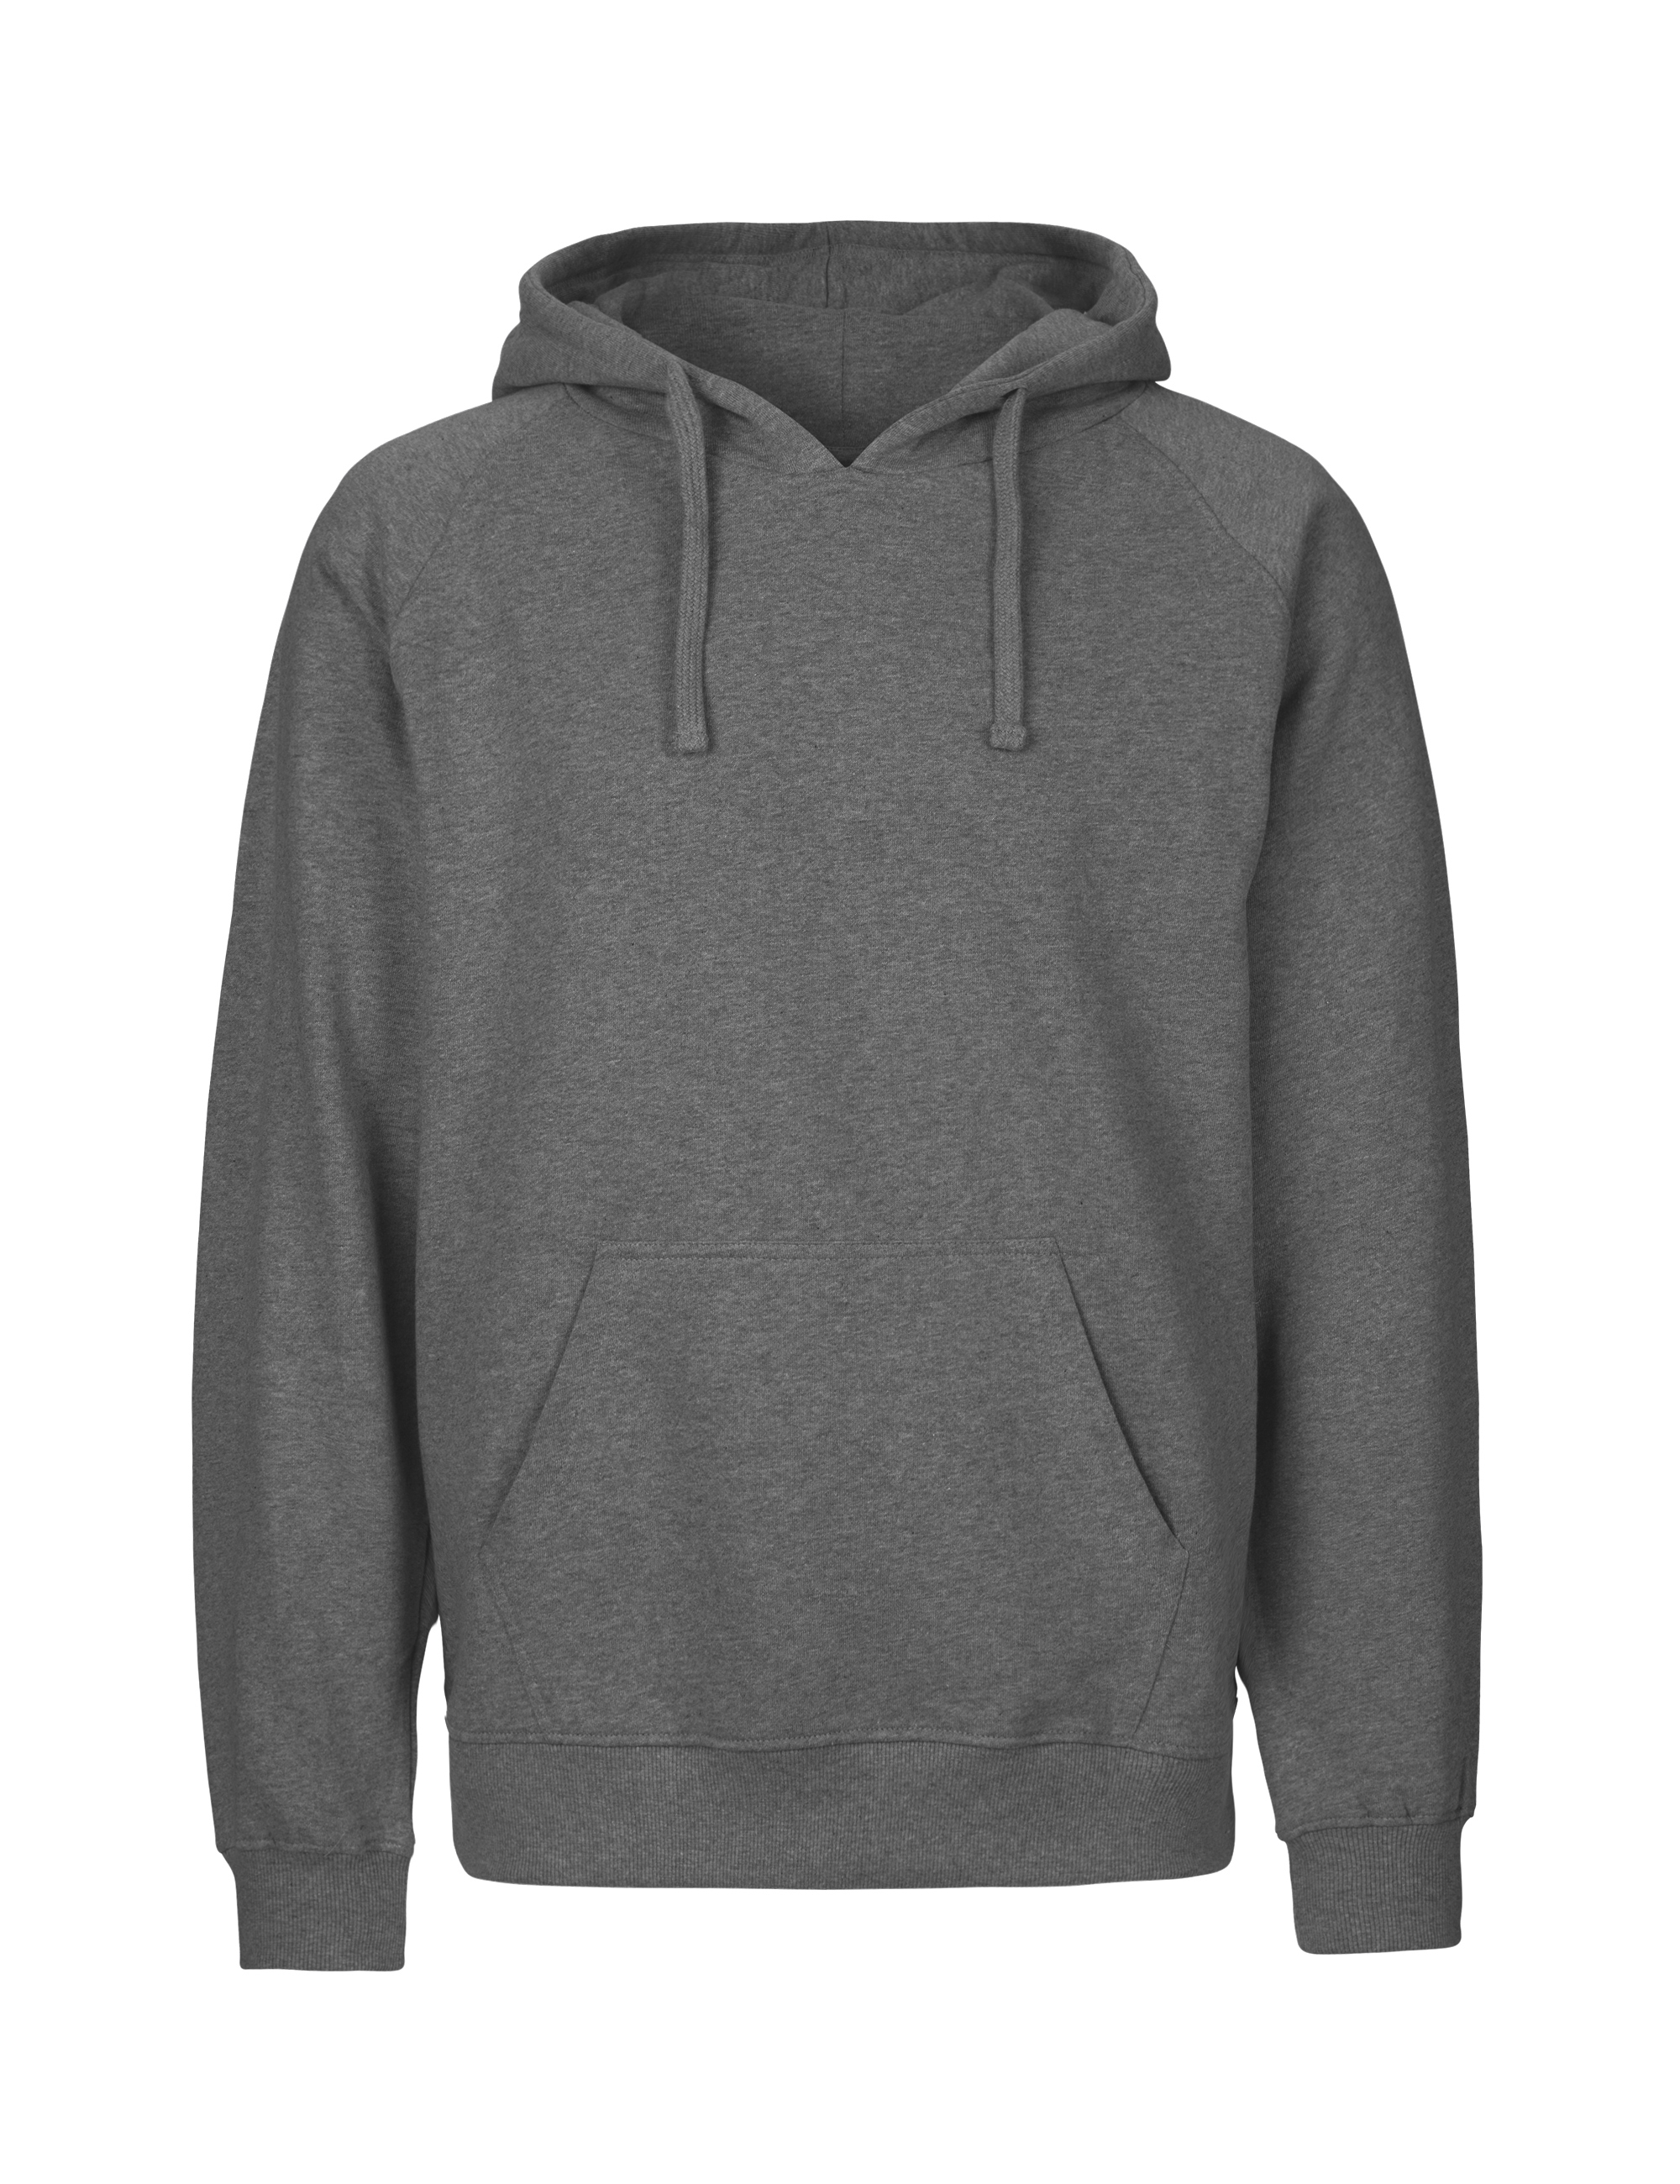 O63101 Mens Hoodie i Dark Heather